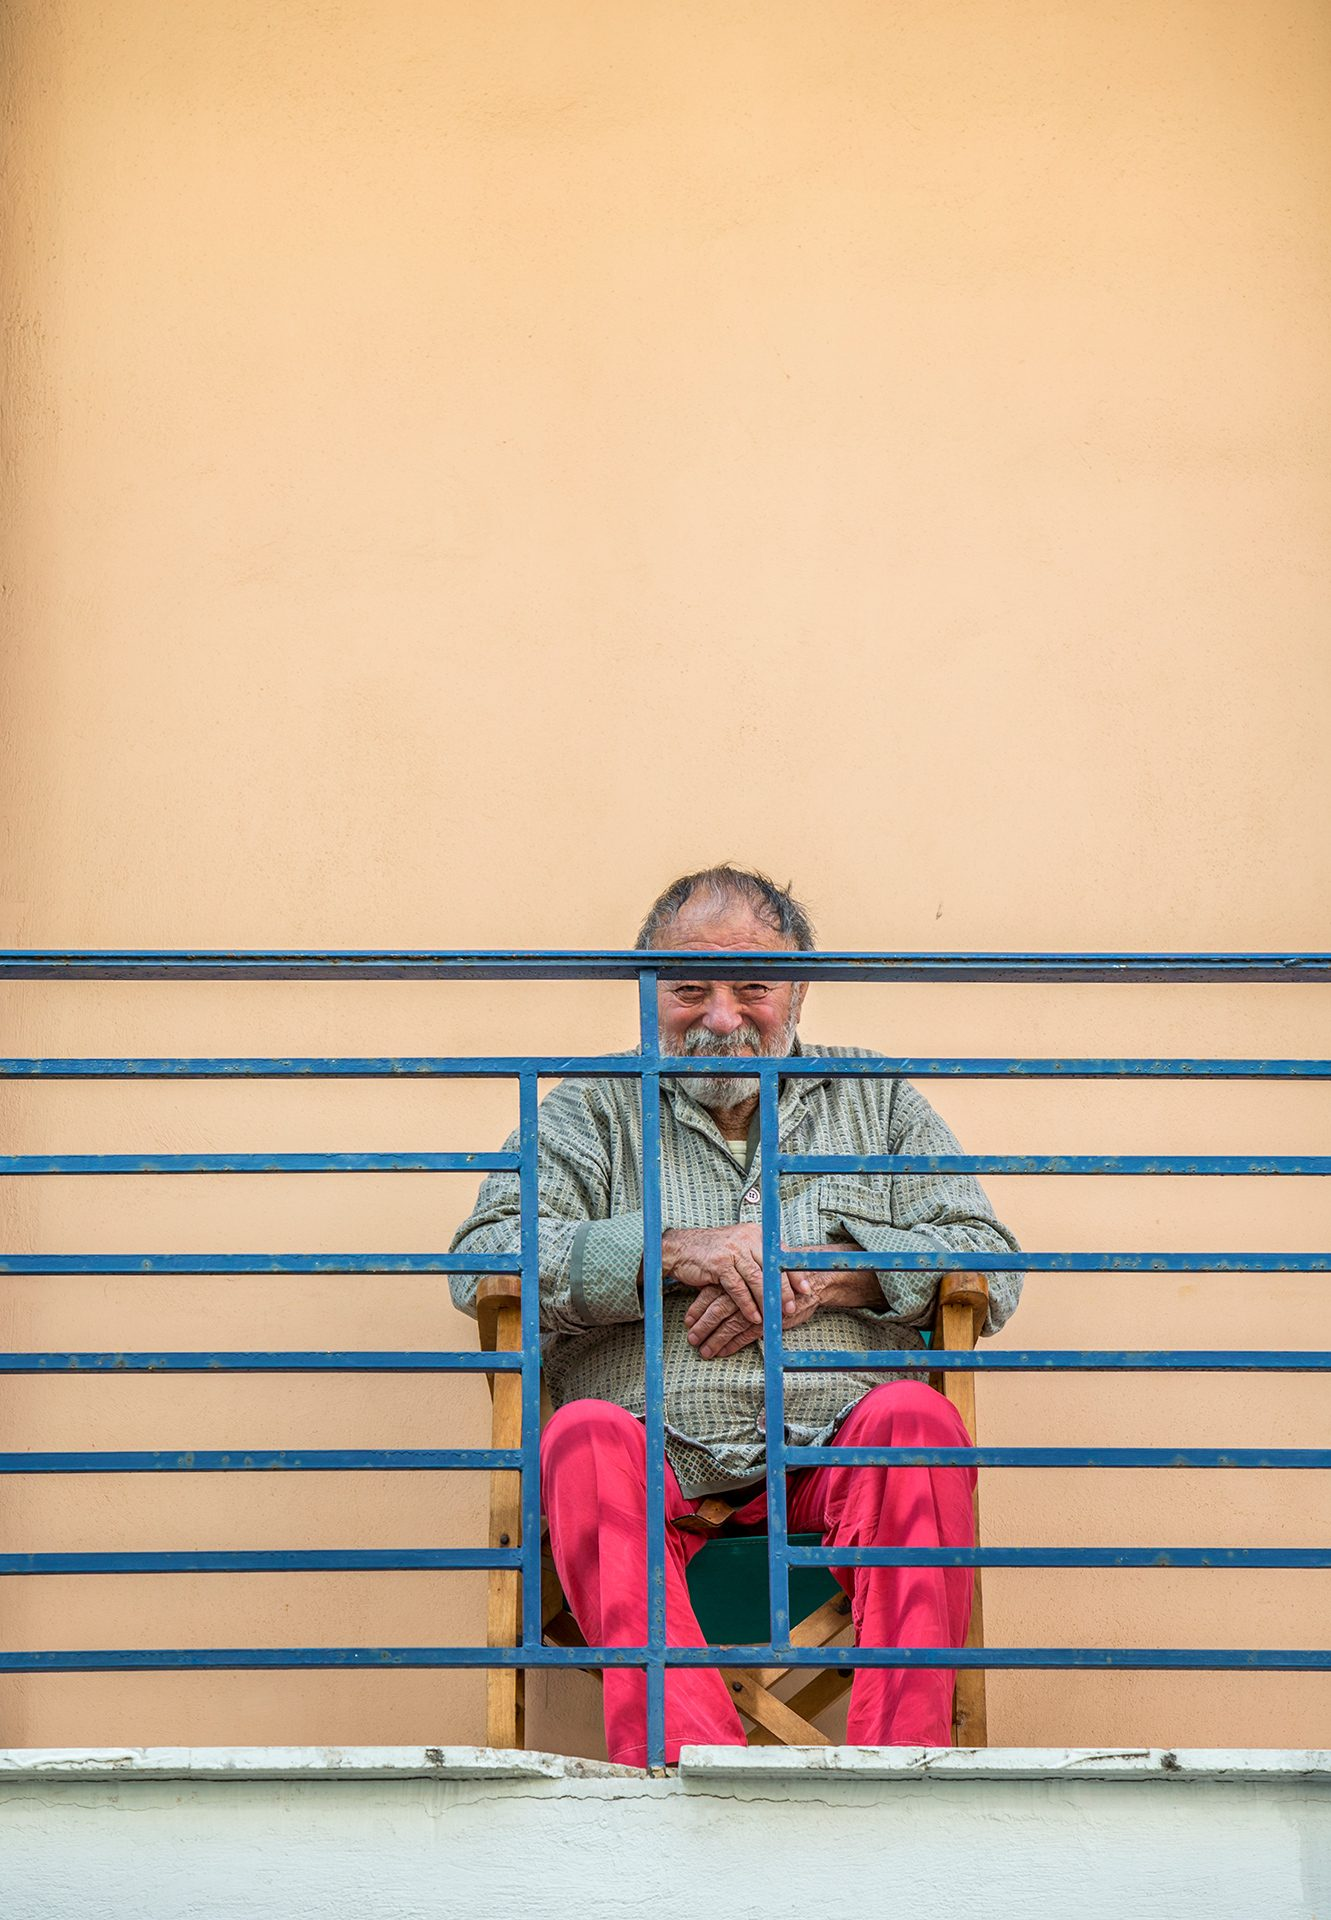 Smile, Corinth, Greece, old man, positive